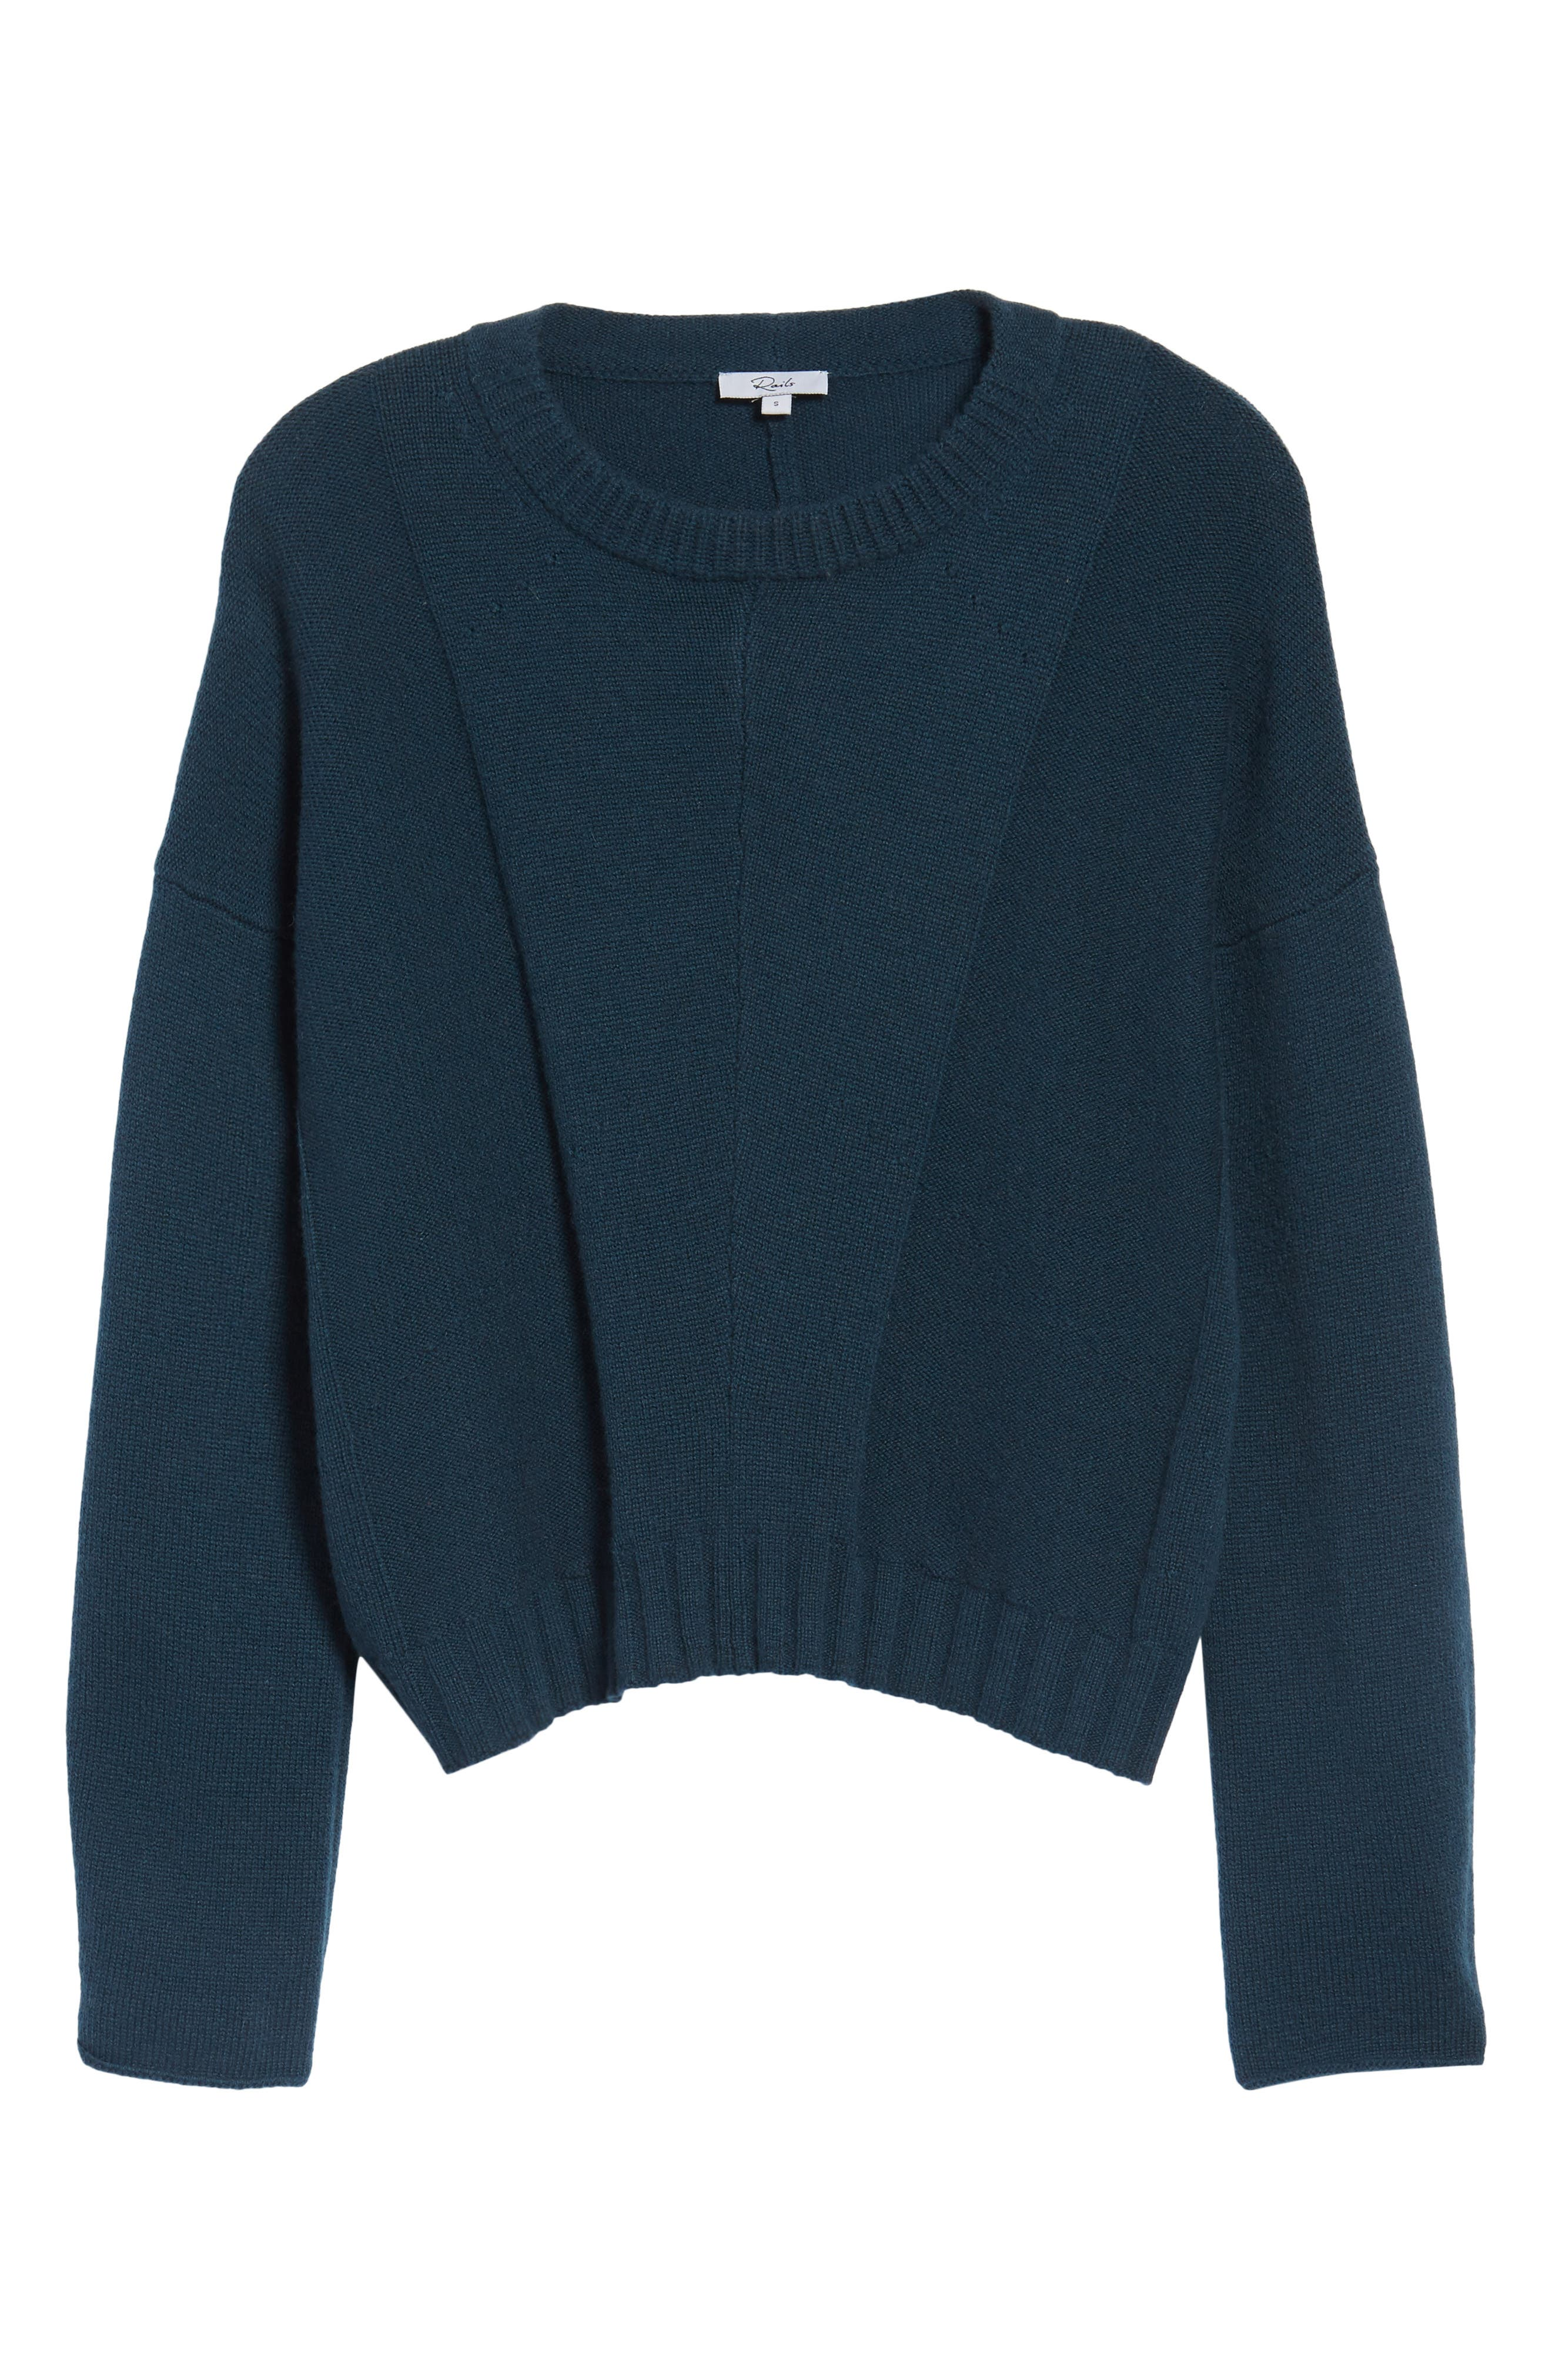 Joanna Wool & Cashmere Sweater,                             Alternate thumbnail 6, color,                             304